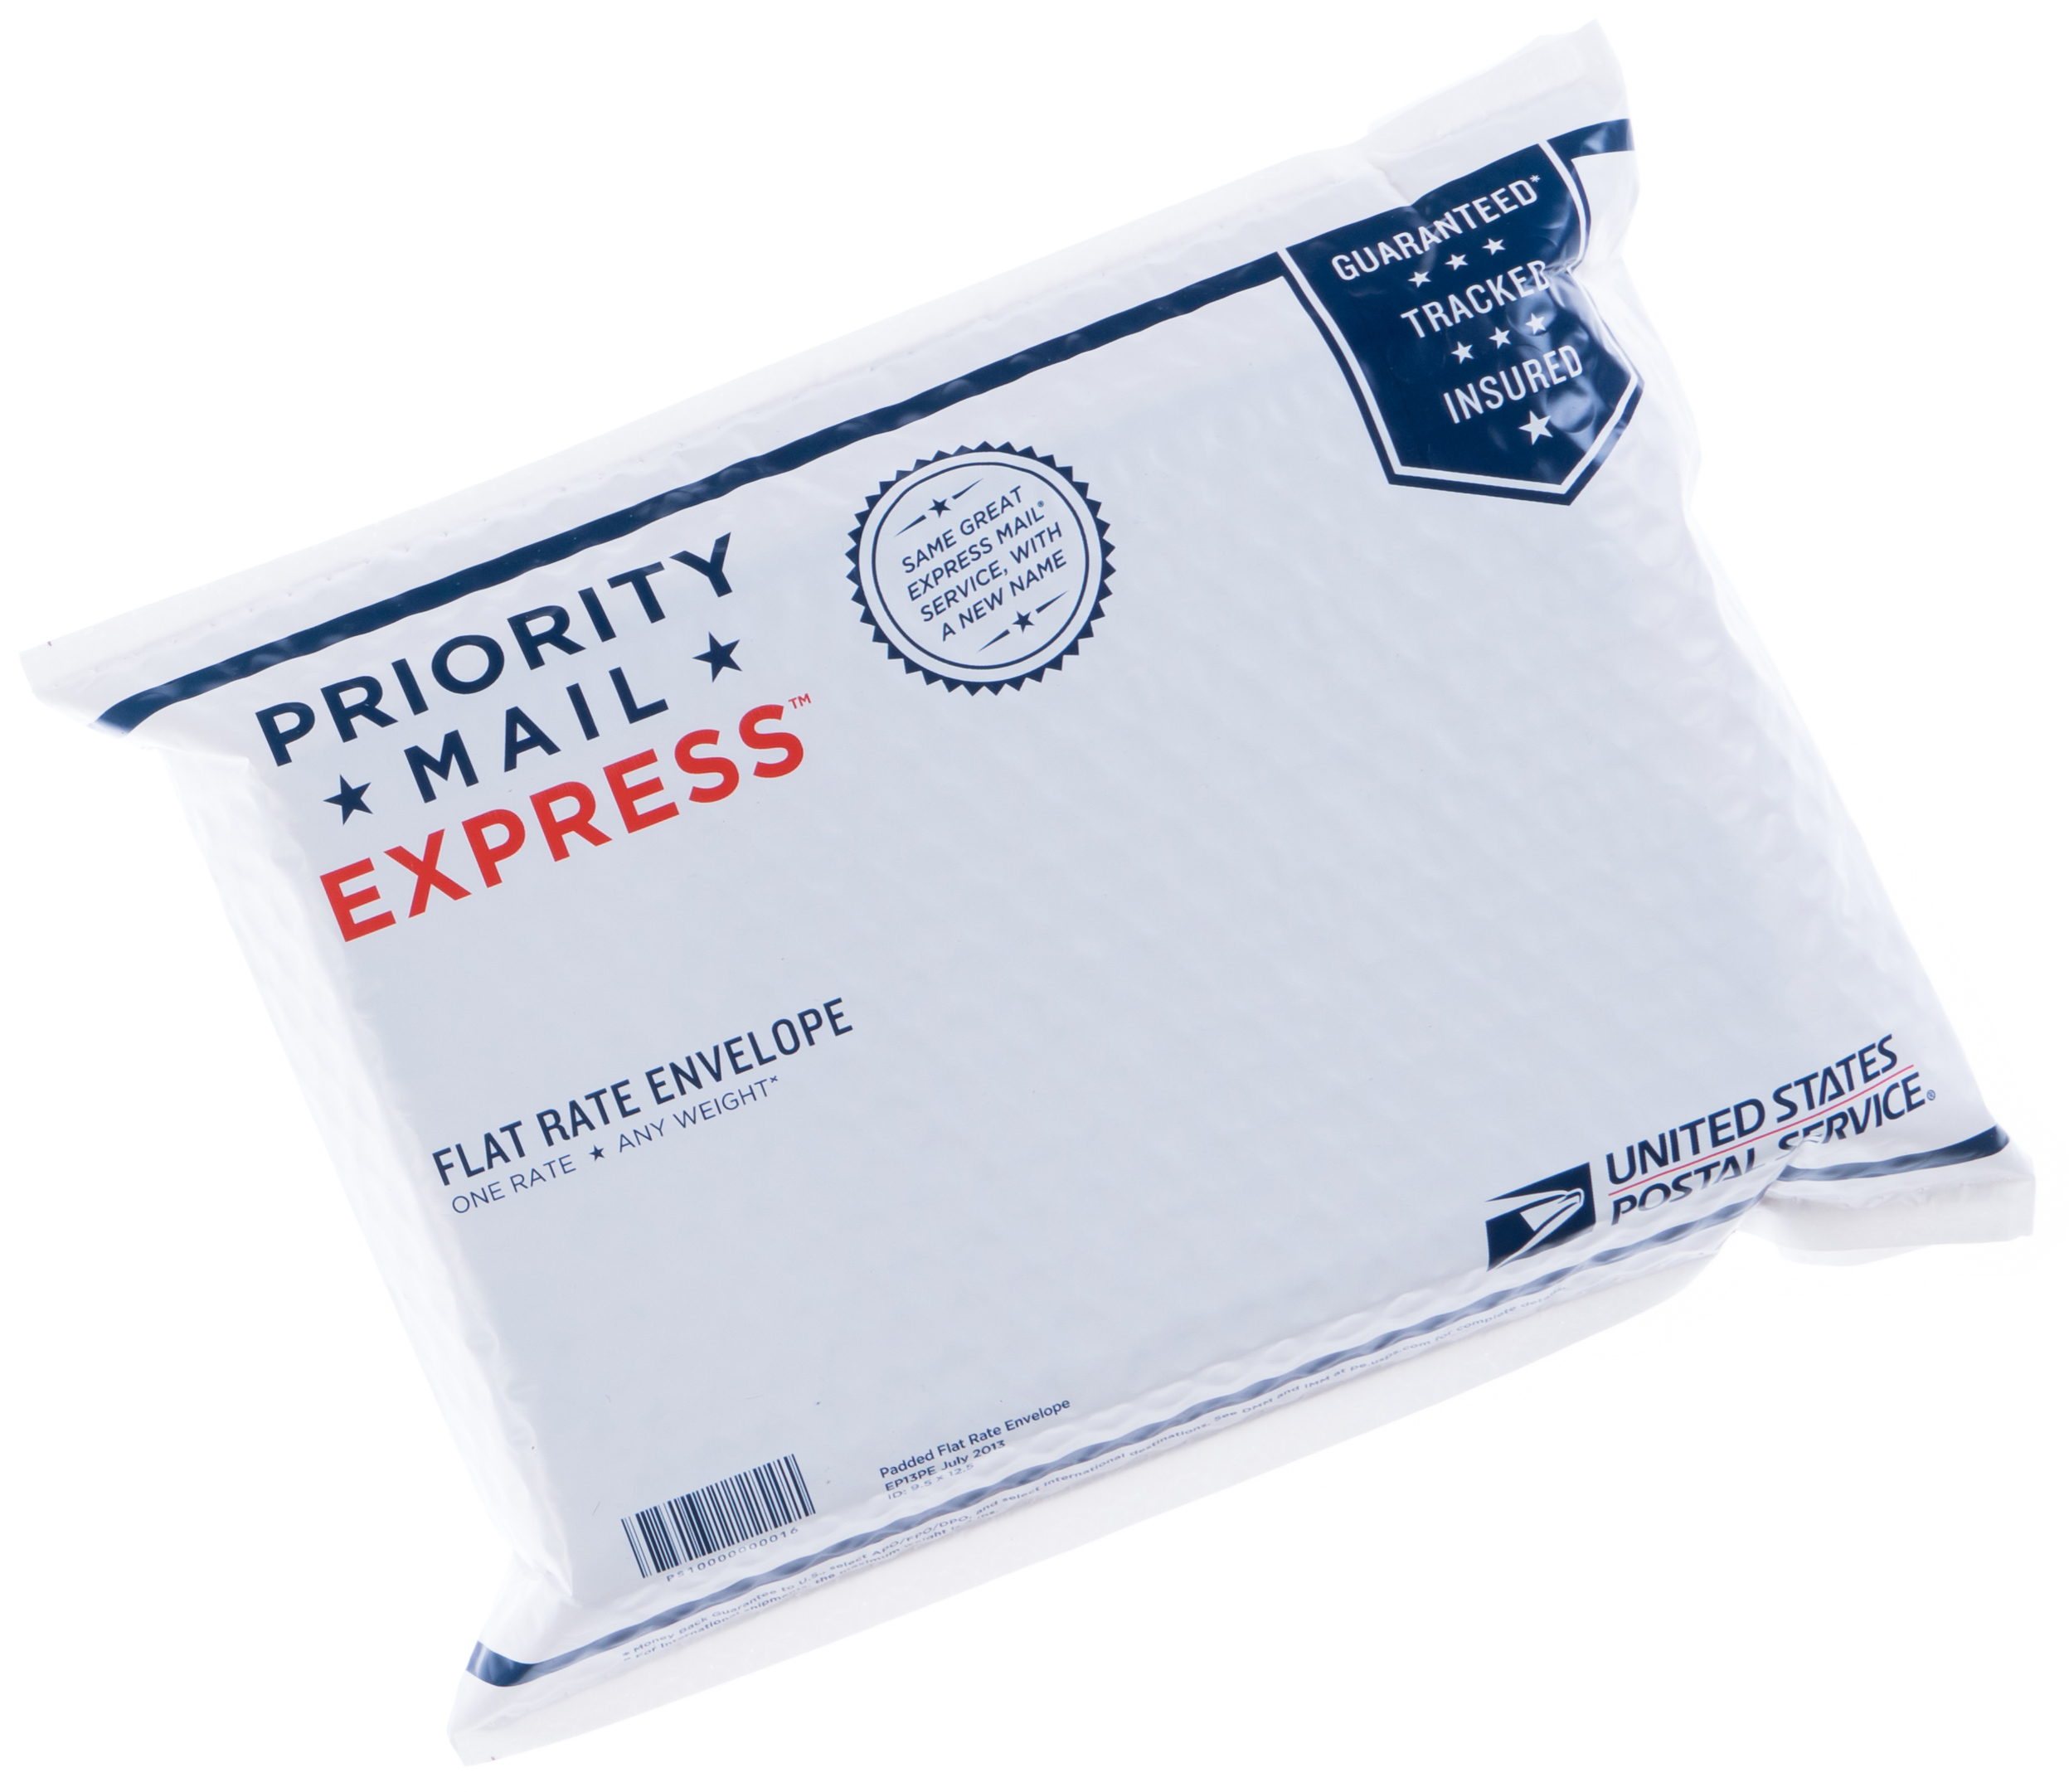 Padded Flat Rate Envelope for Priority Mail Express International